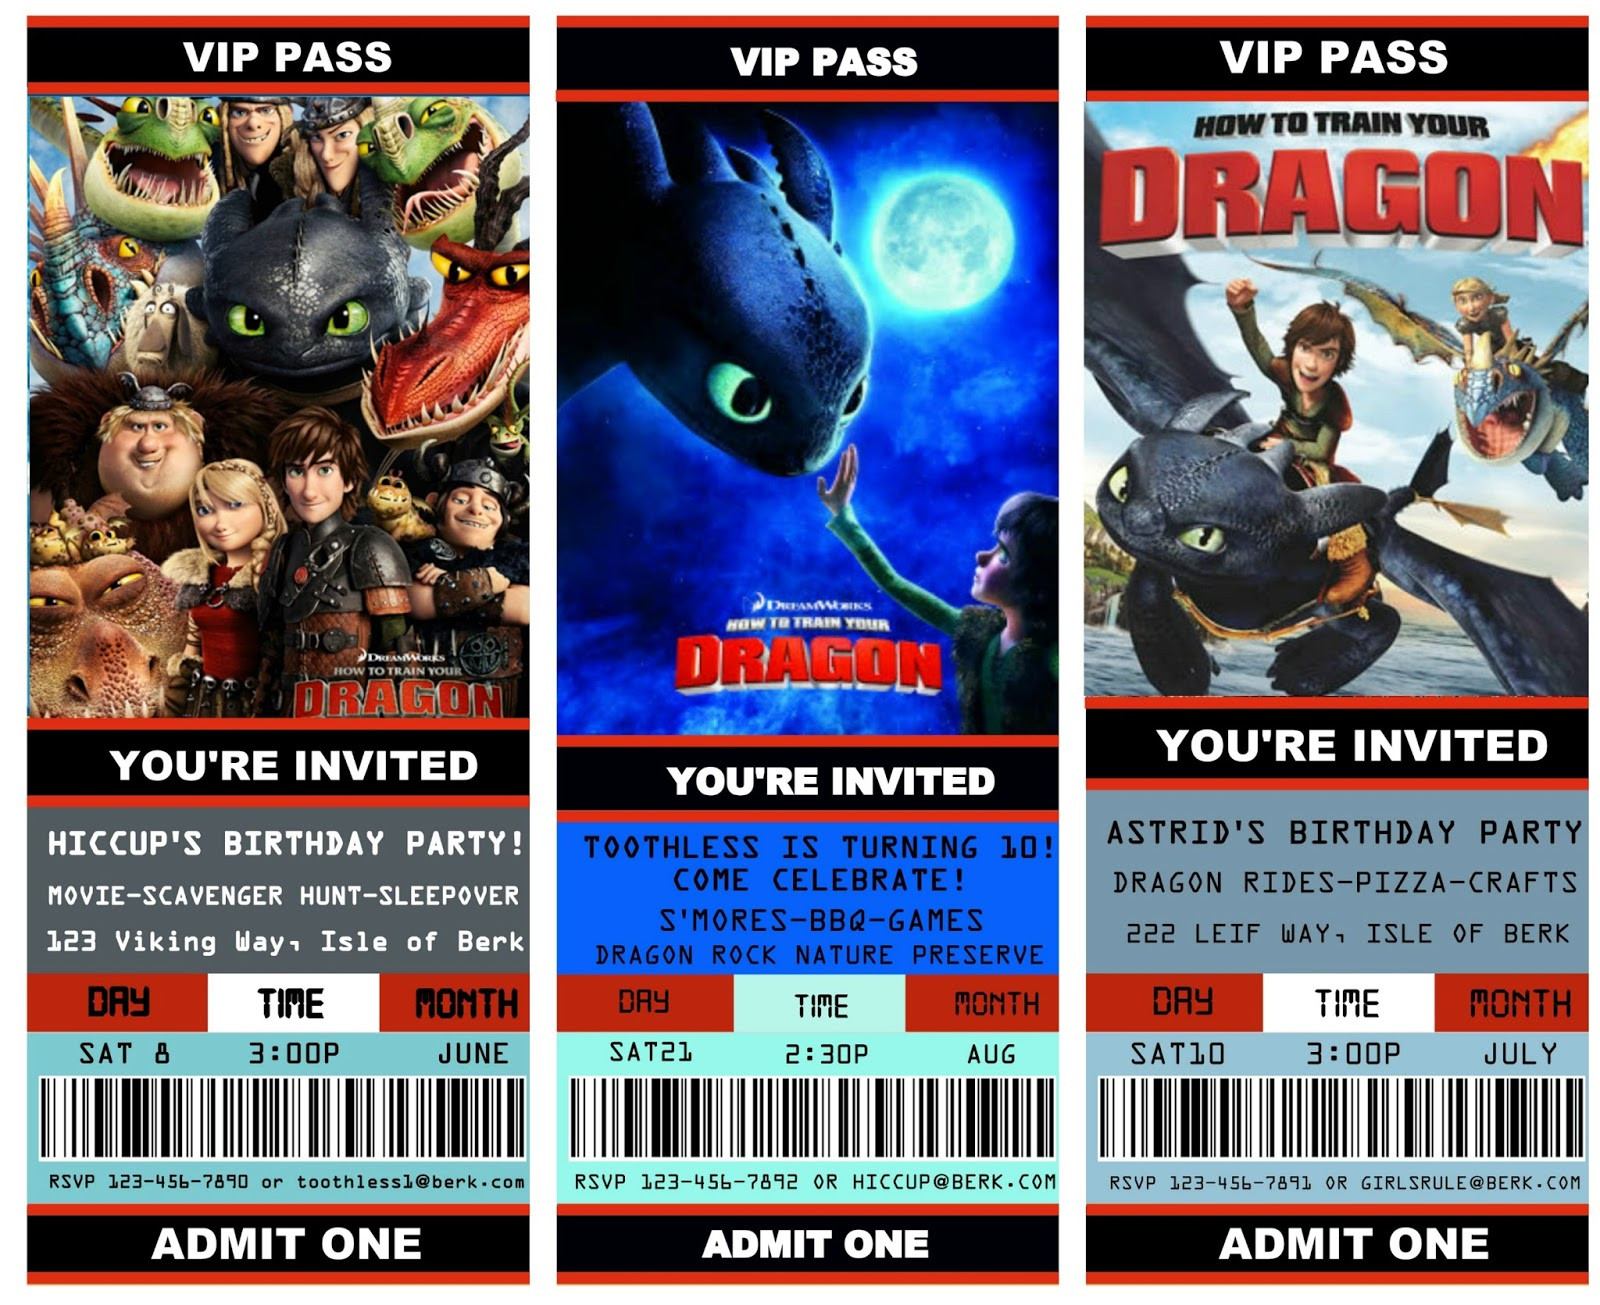 Free Printable Movie Ticket Style Invitations: How To Train Your Dragon  Movie Ticket Template Free